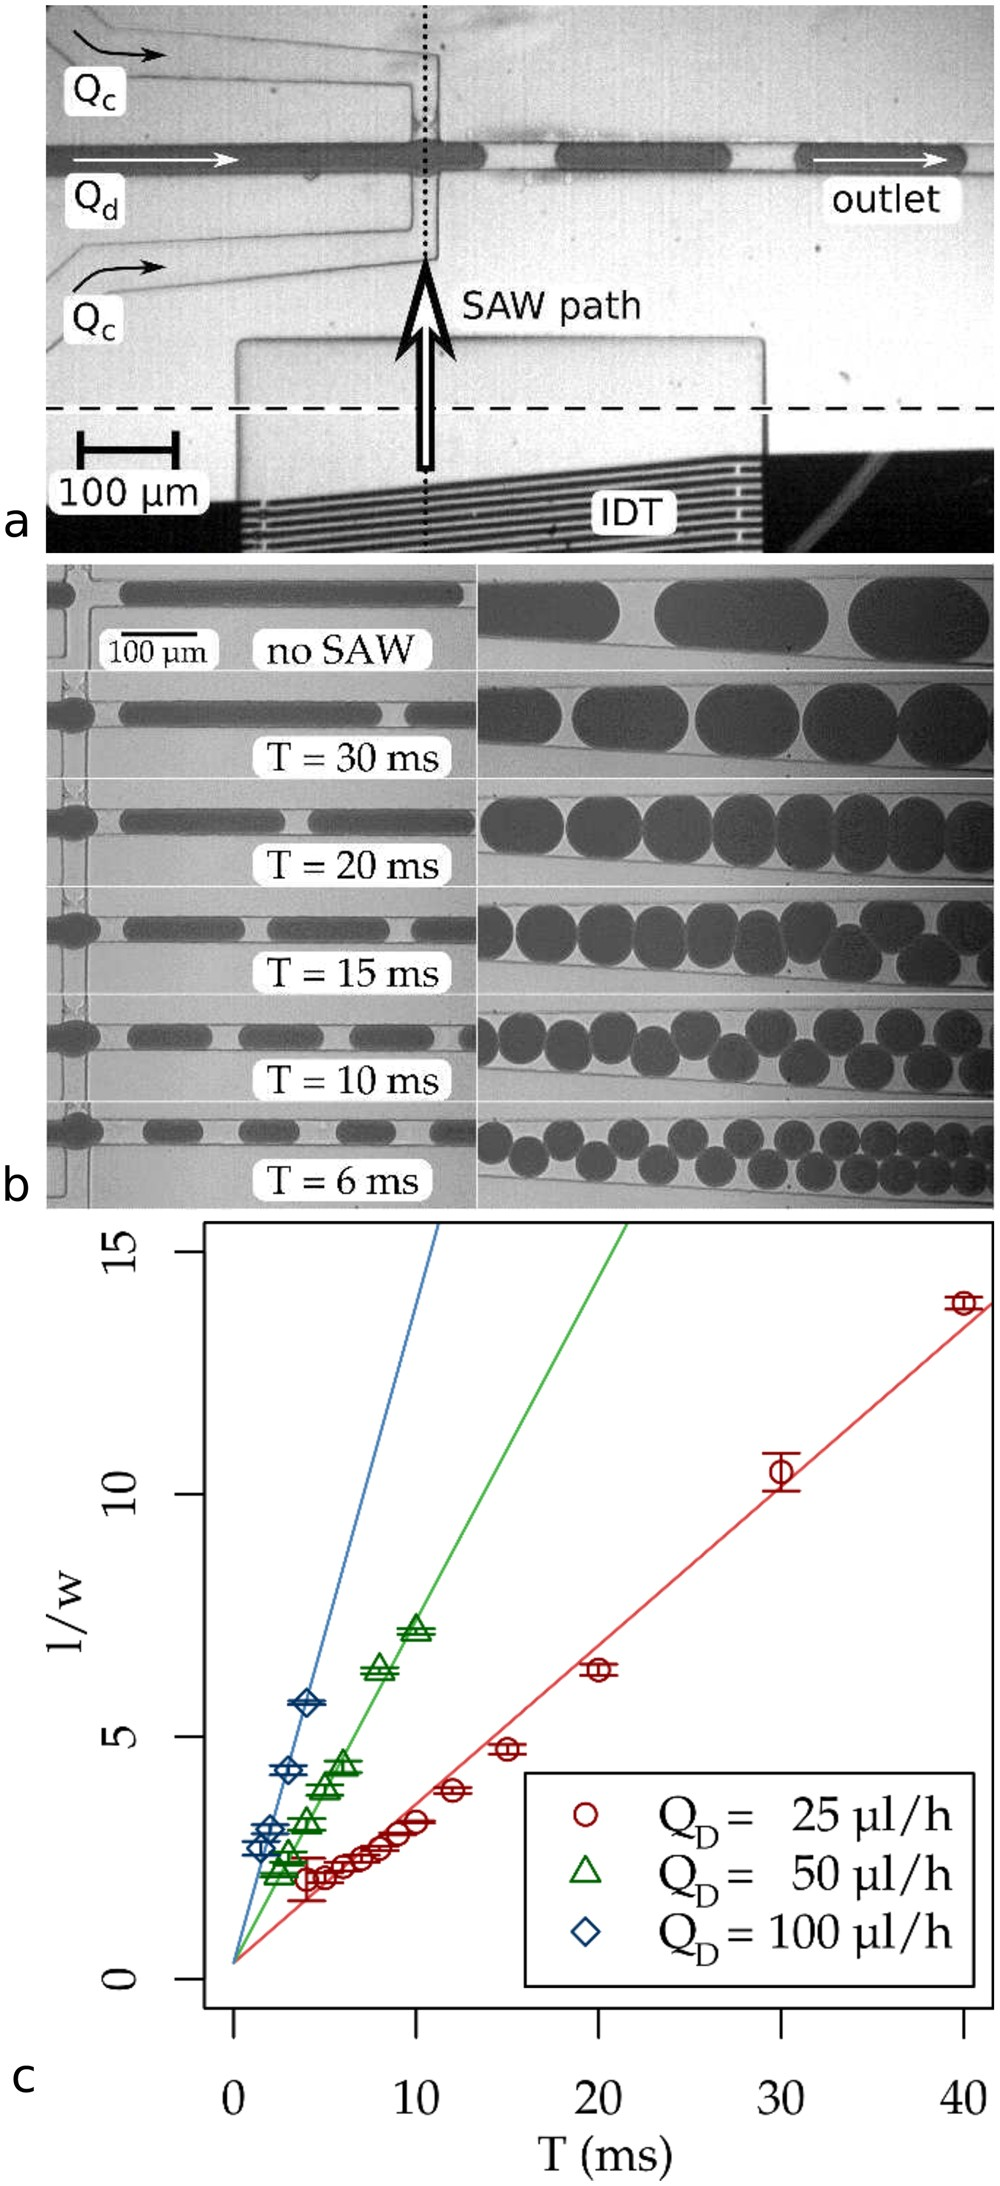 Real Time Size Modulation And Synchronization Of A Microfluidic Alternating Square Pulse Generator Dropmaker With Pulsed Surface Acoustic Waves Saw Scientific Reports